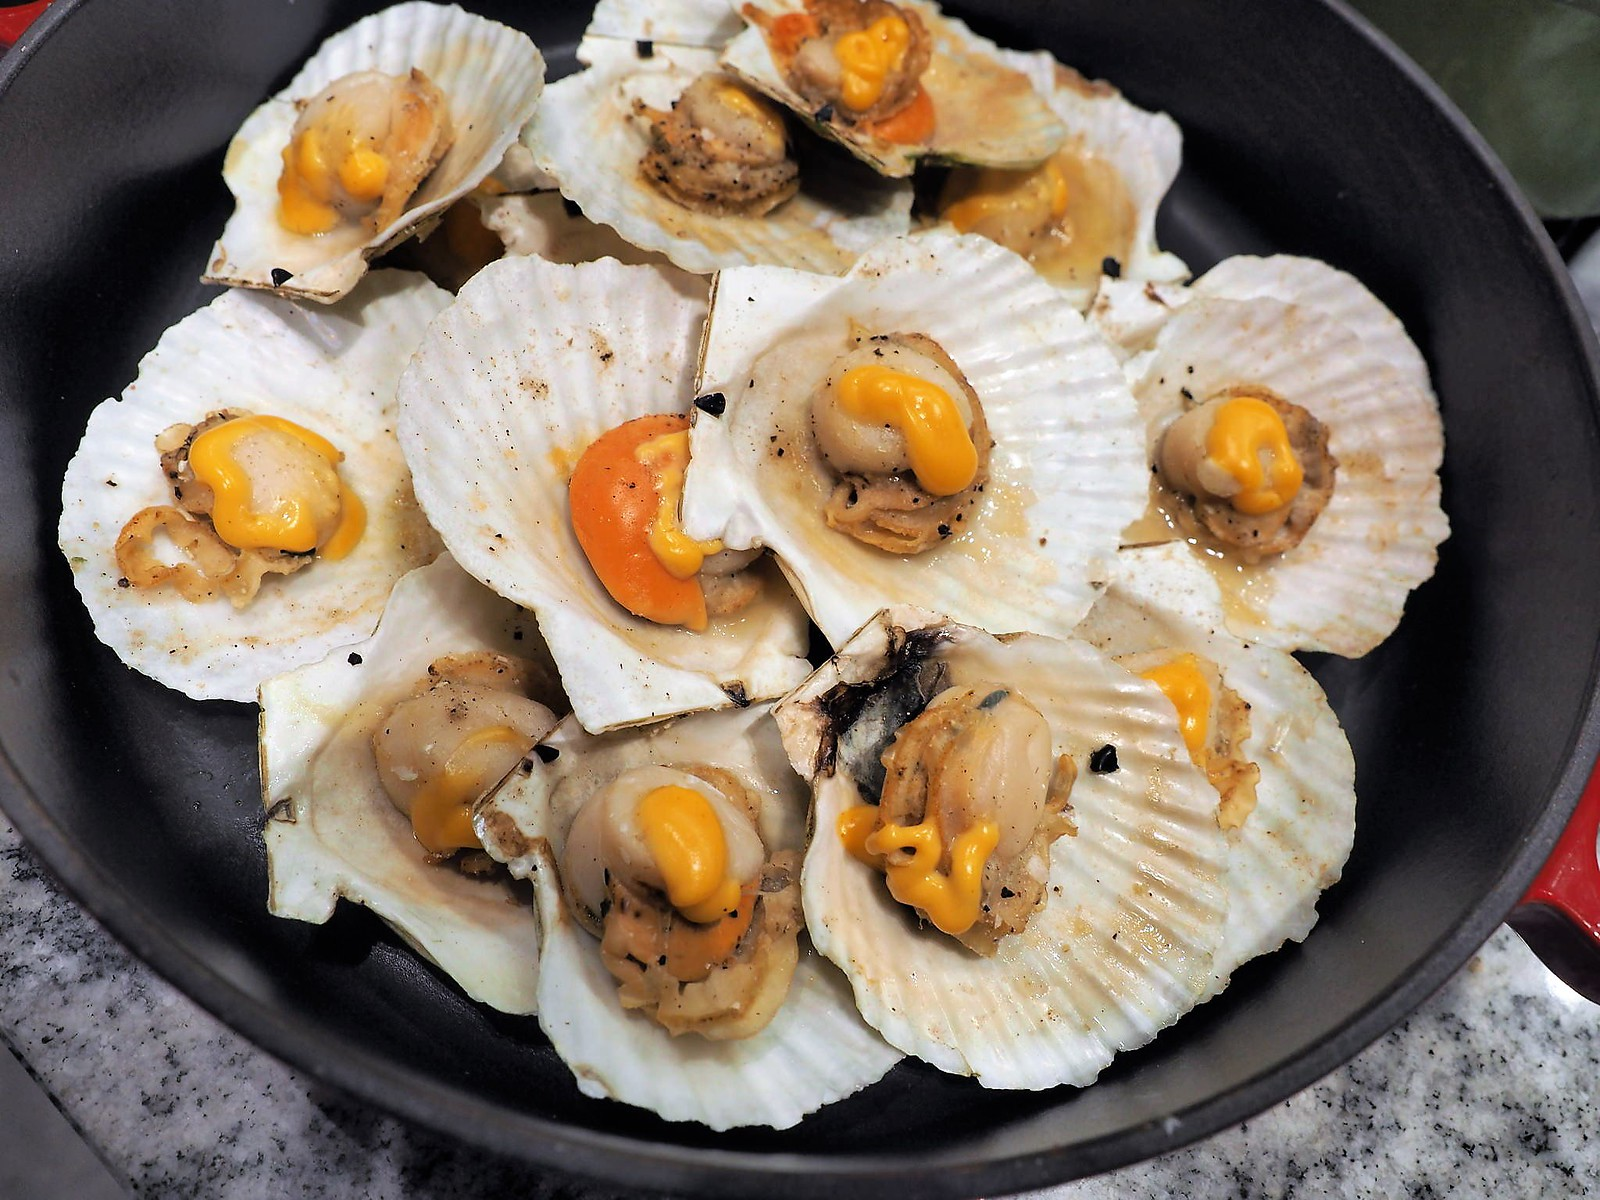 Steamed big and juicy scallop